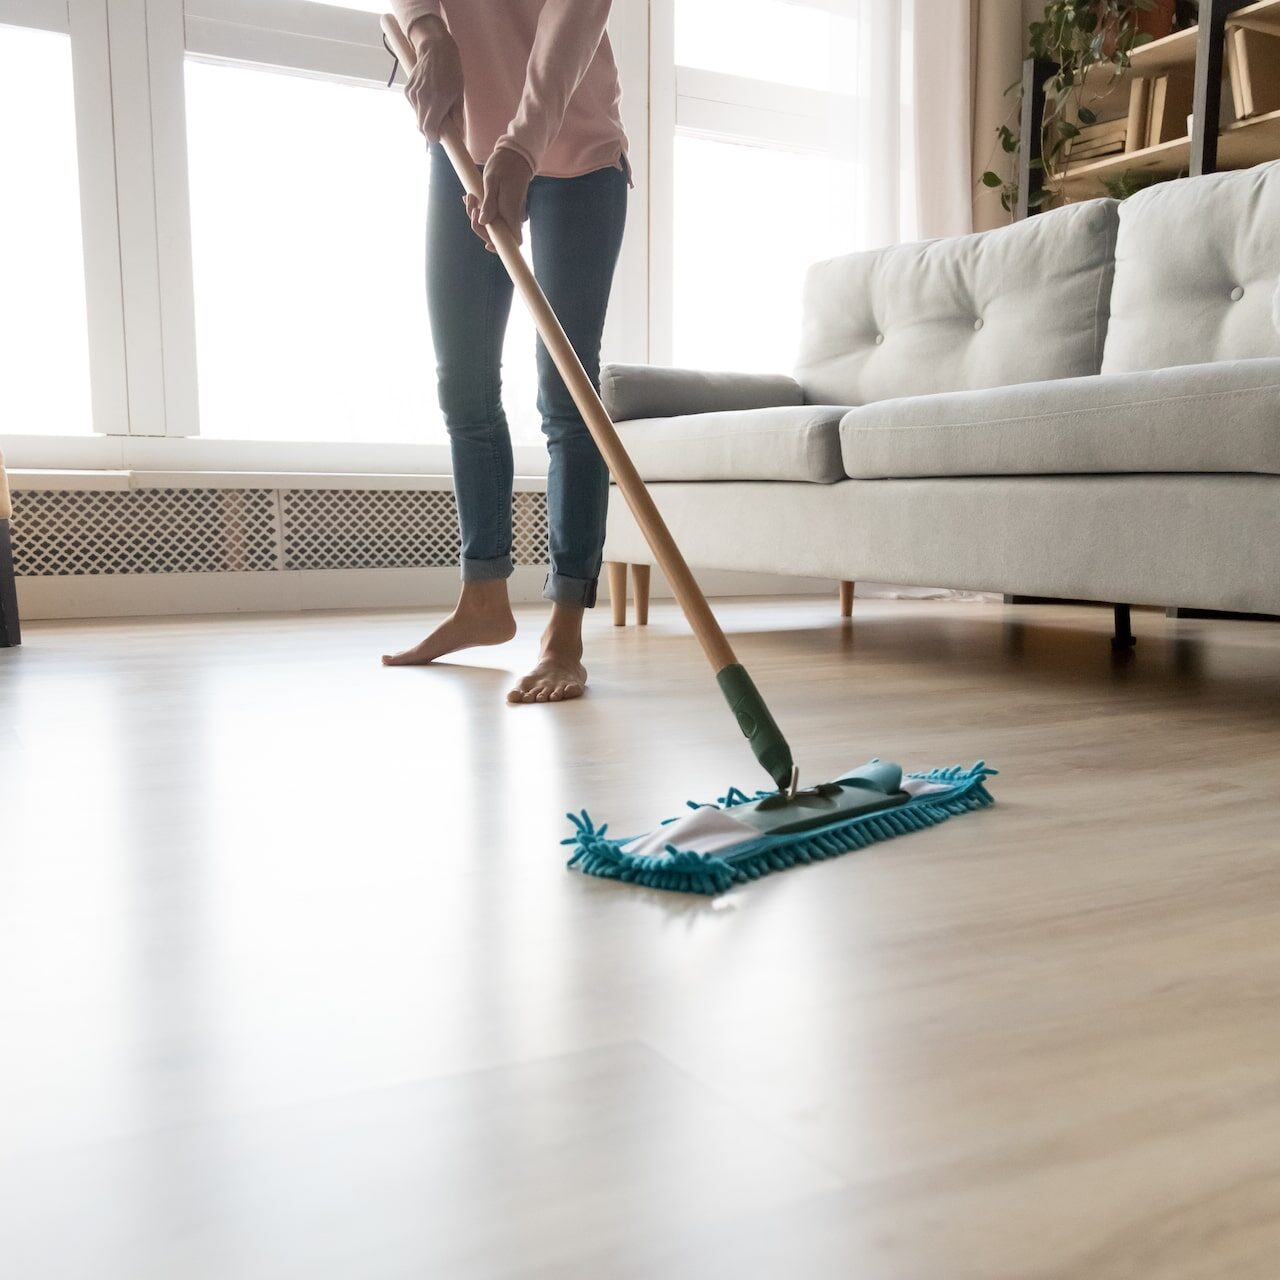 san-chem-residential-cleaning-min